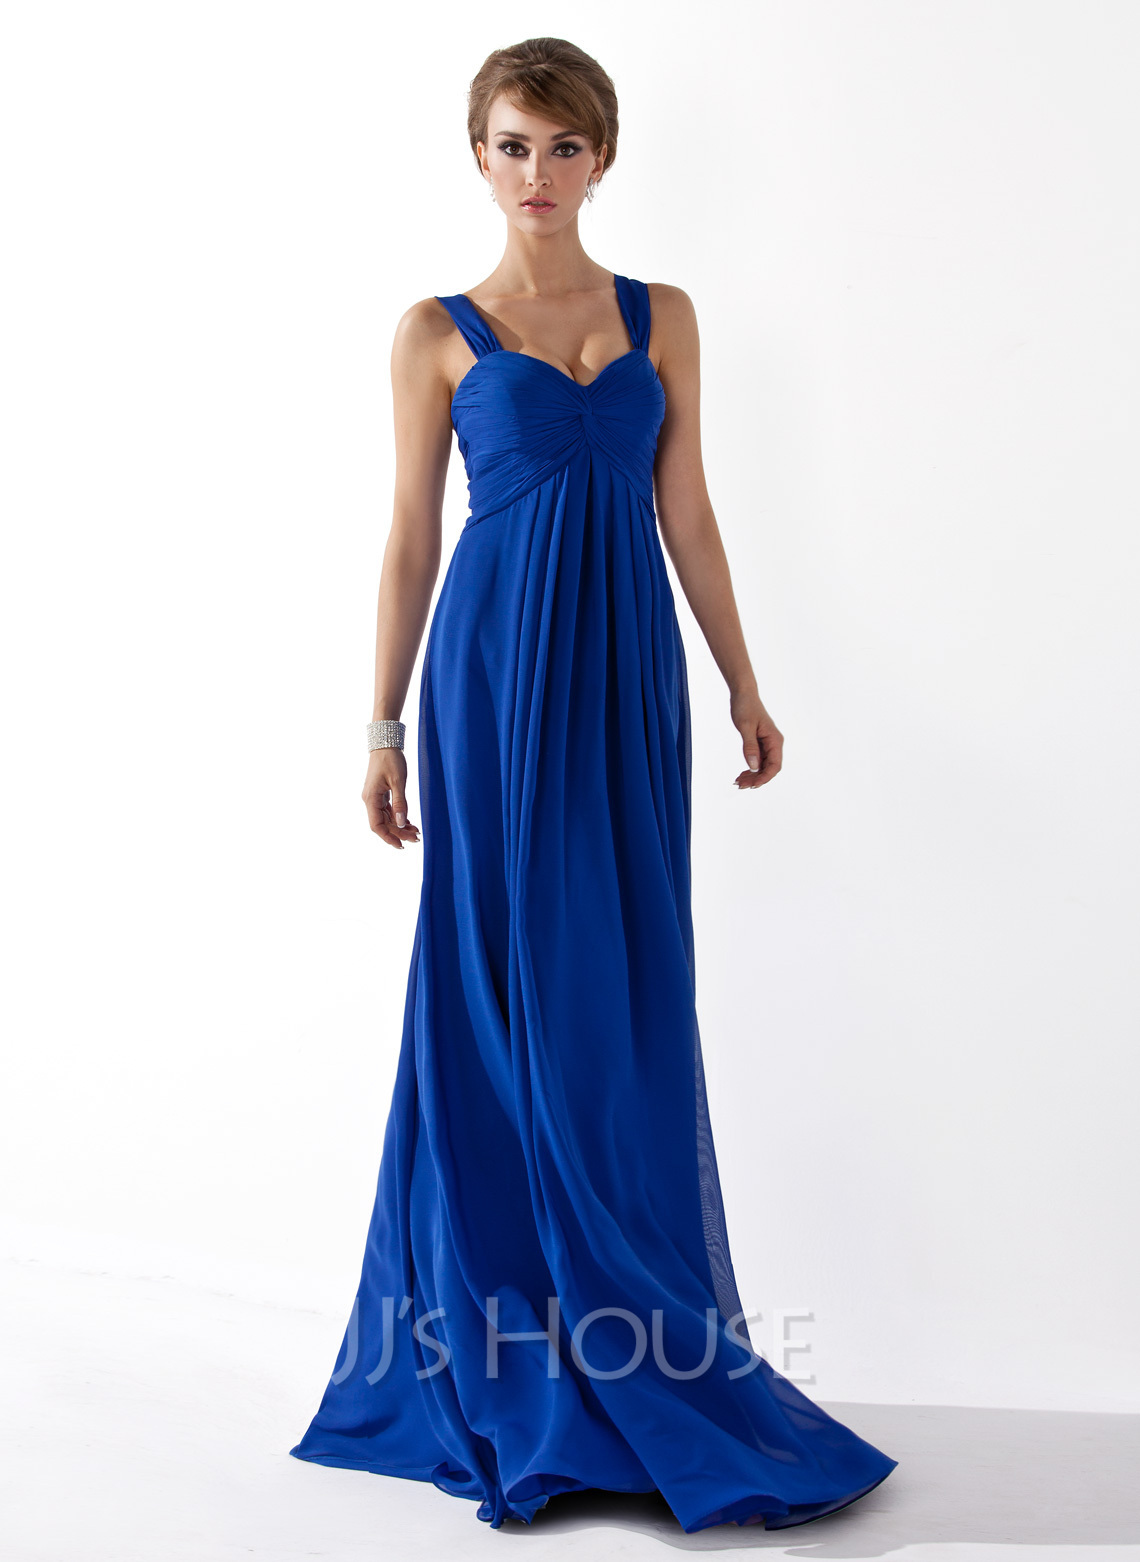 Chiffon Floor-length Empire Sweetheart Bridesmaid Dress - Bridesmaid ...